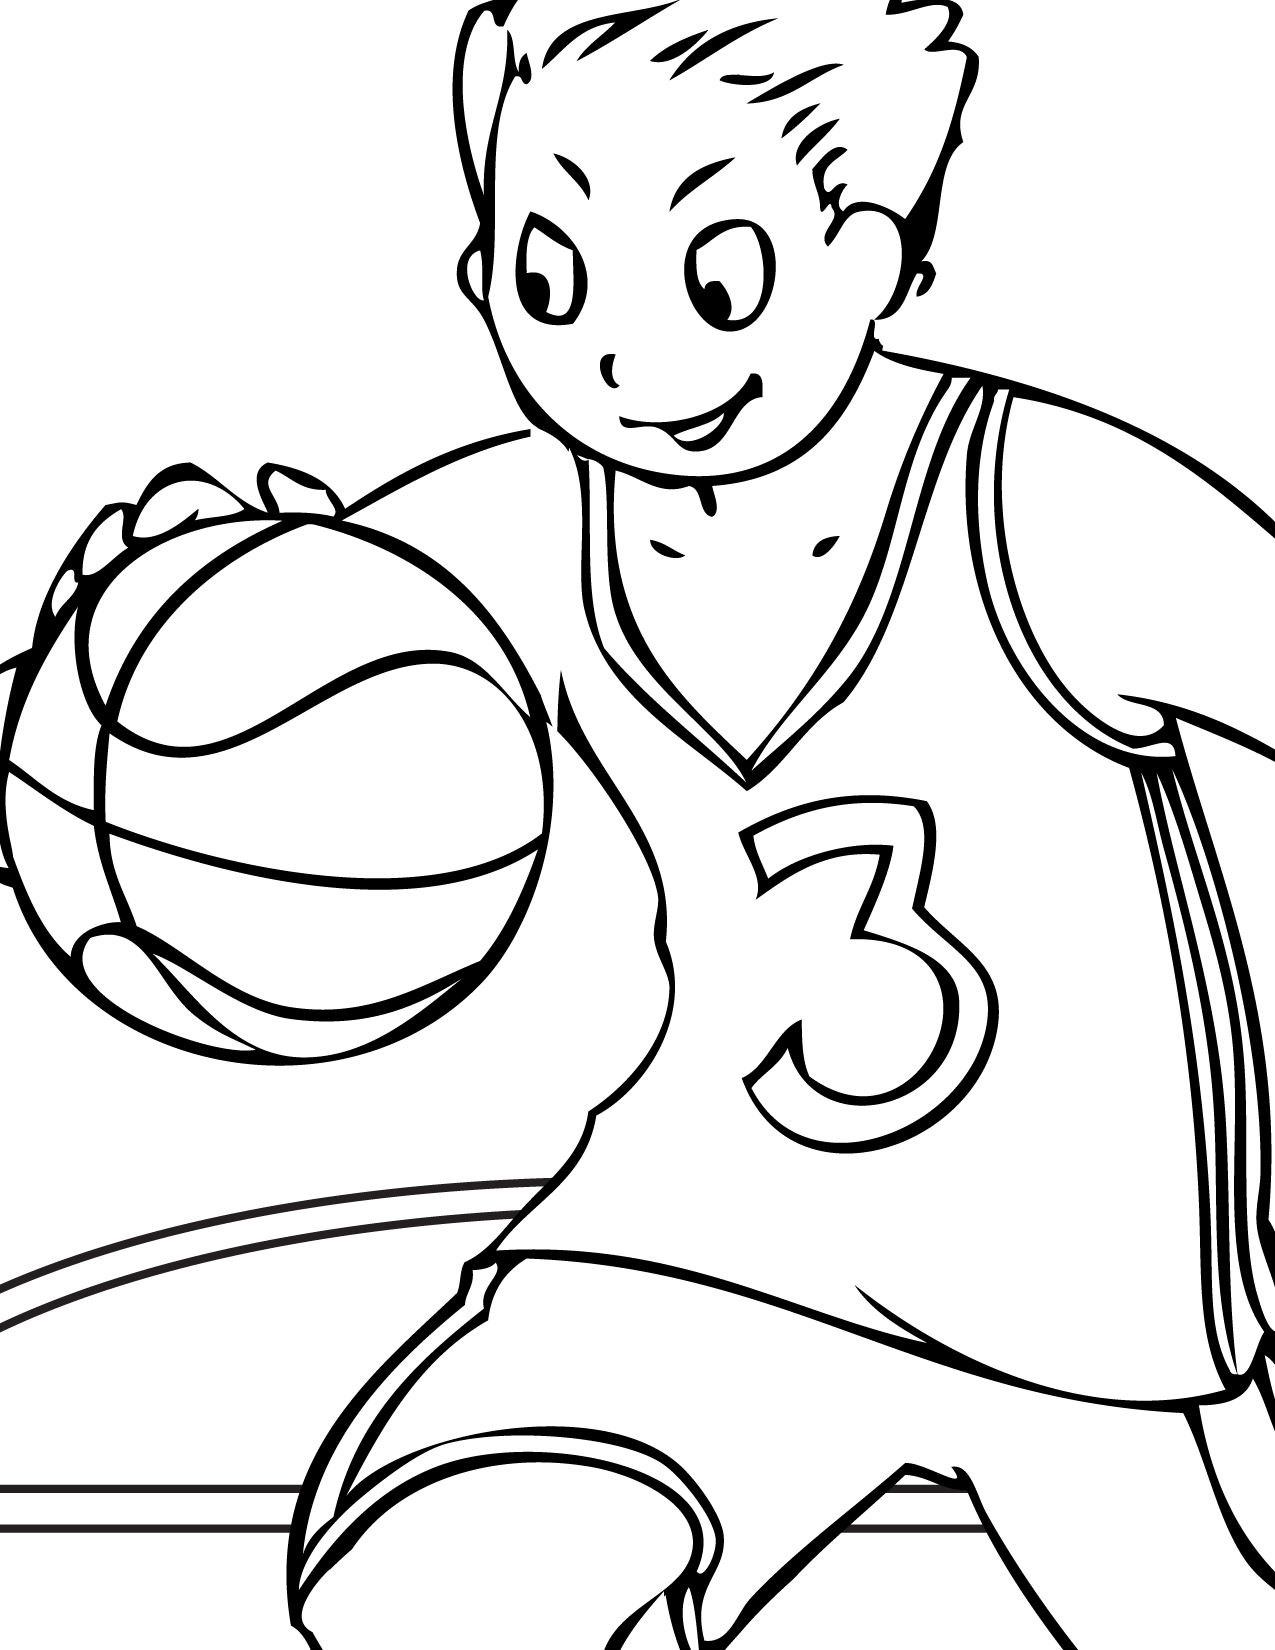 Free Printable Volleyball Coloring Pages For Kids Printable Pages